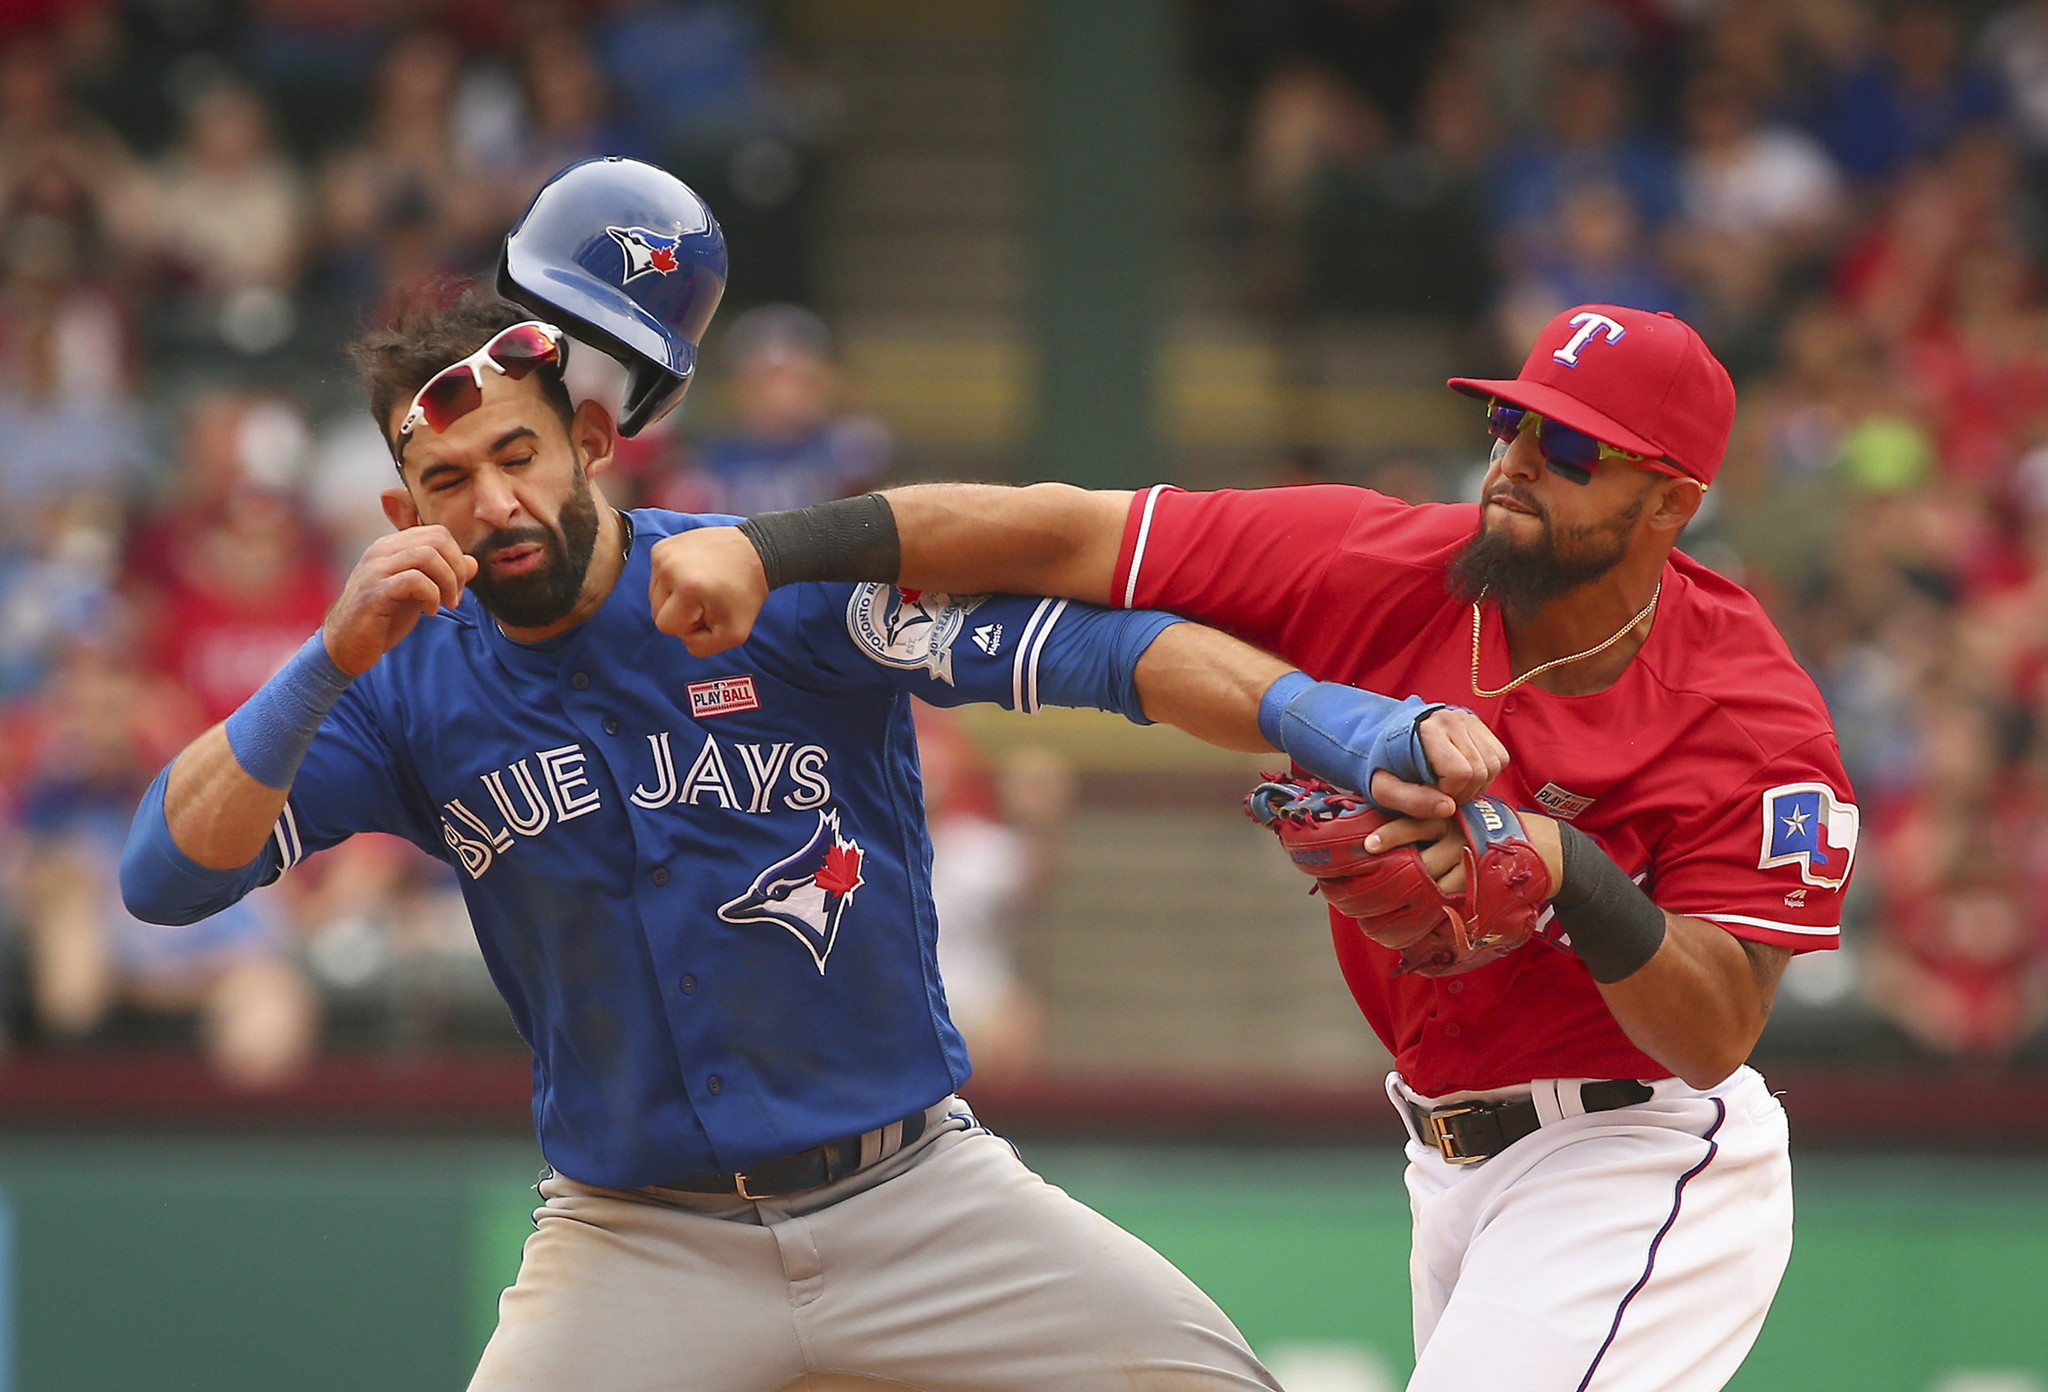 Rougned Odor showed Jose Bautista what 'in your face' really means - Baltimore Sun